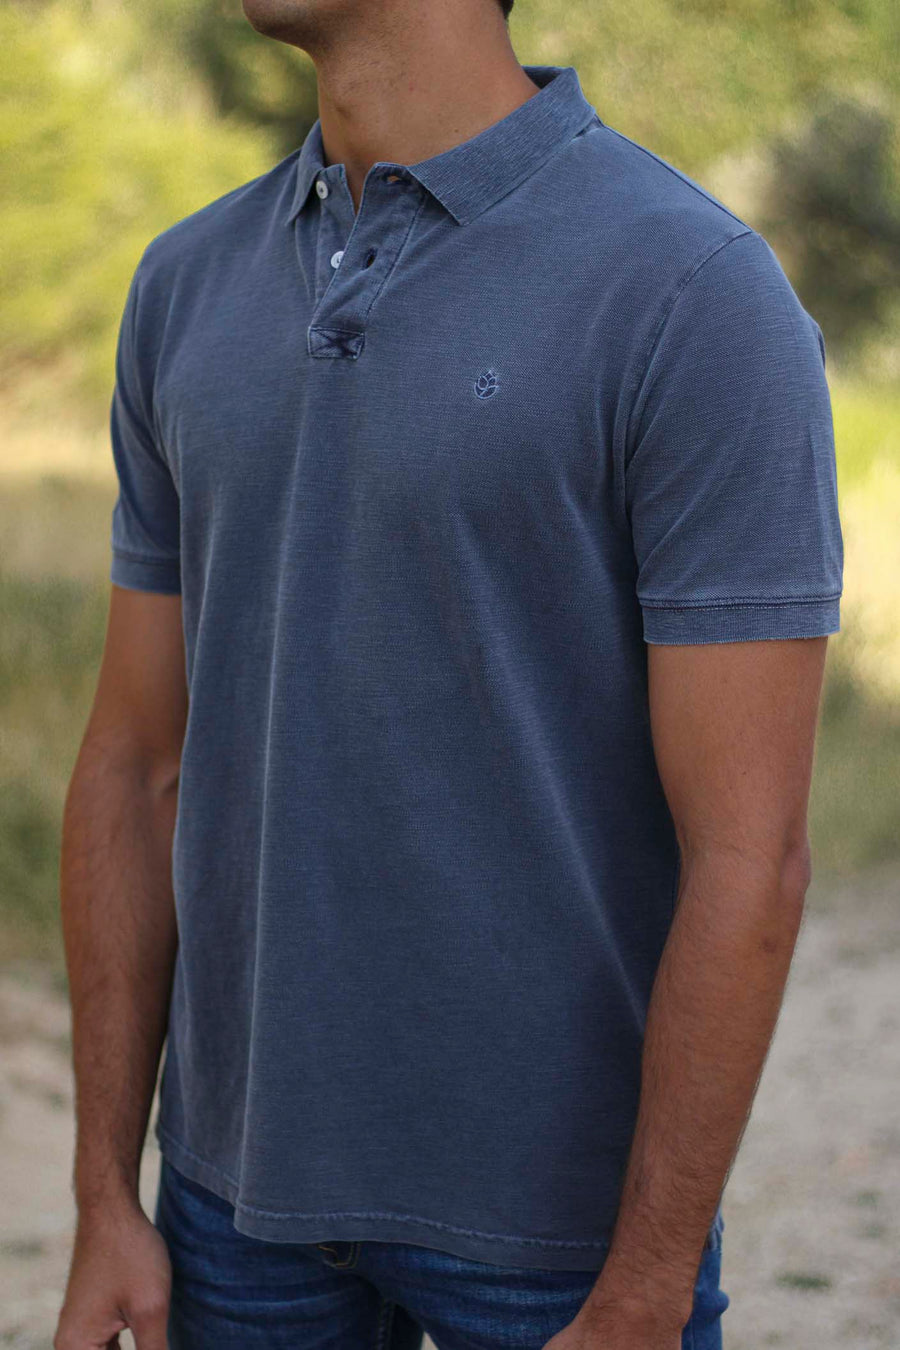 Distressed Hague Blue Gray Polo